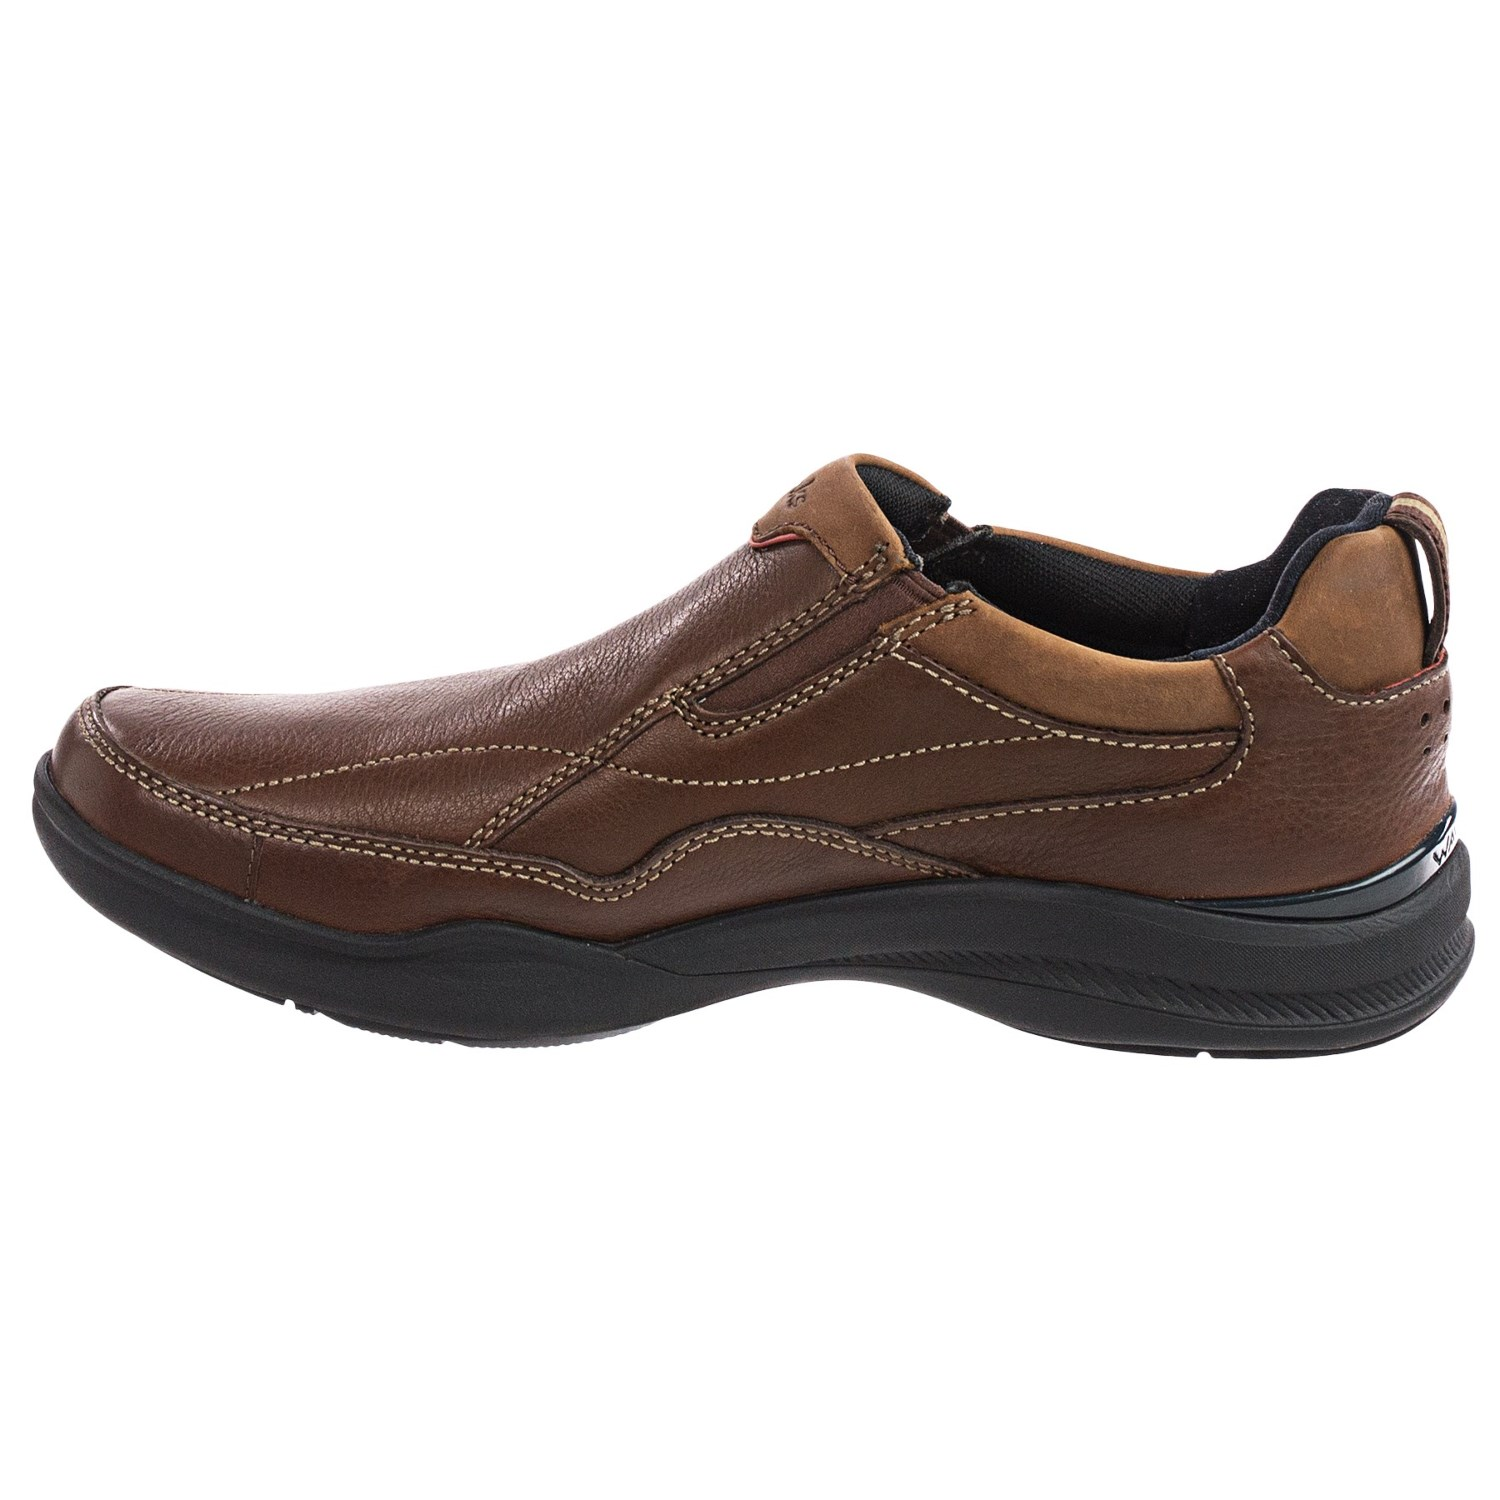 Clarks New Wave Shoes